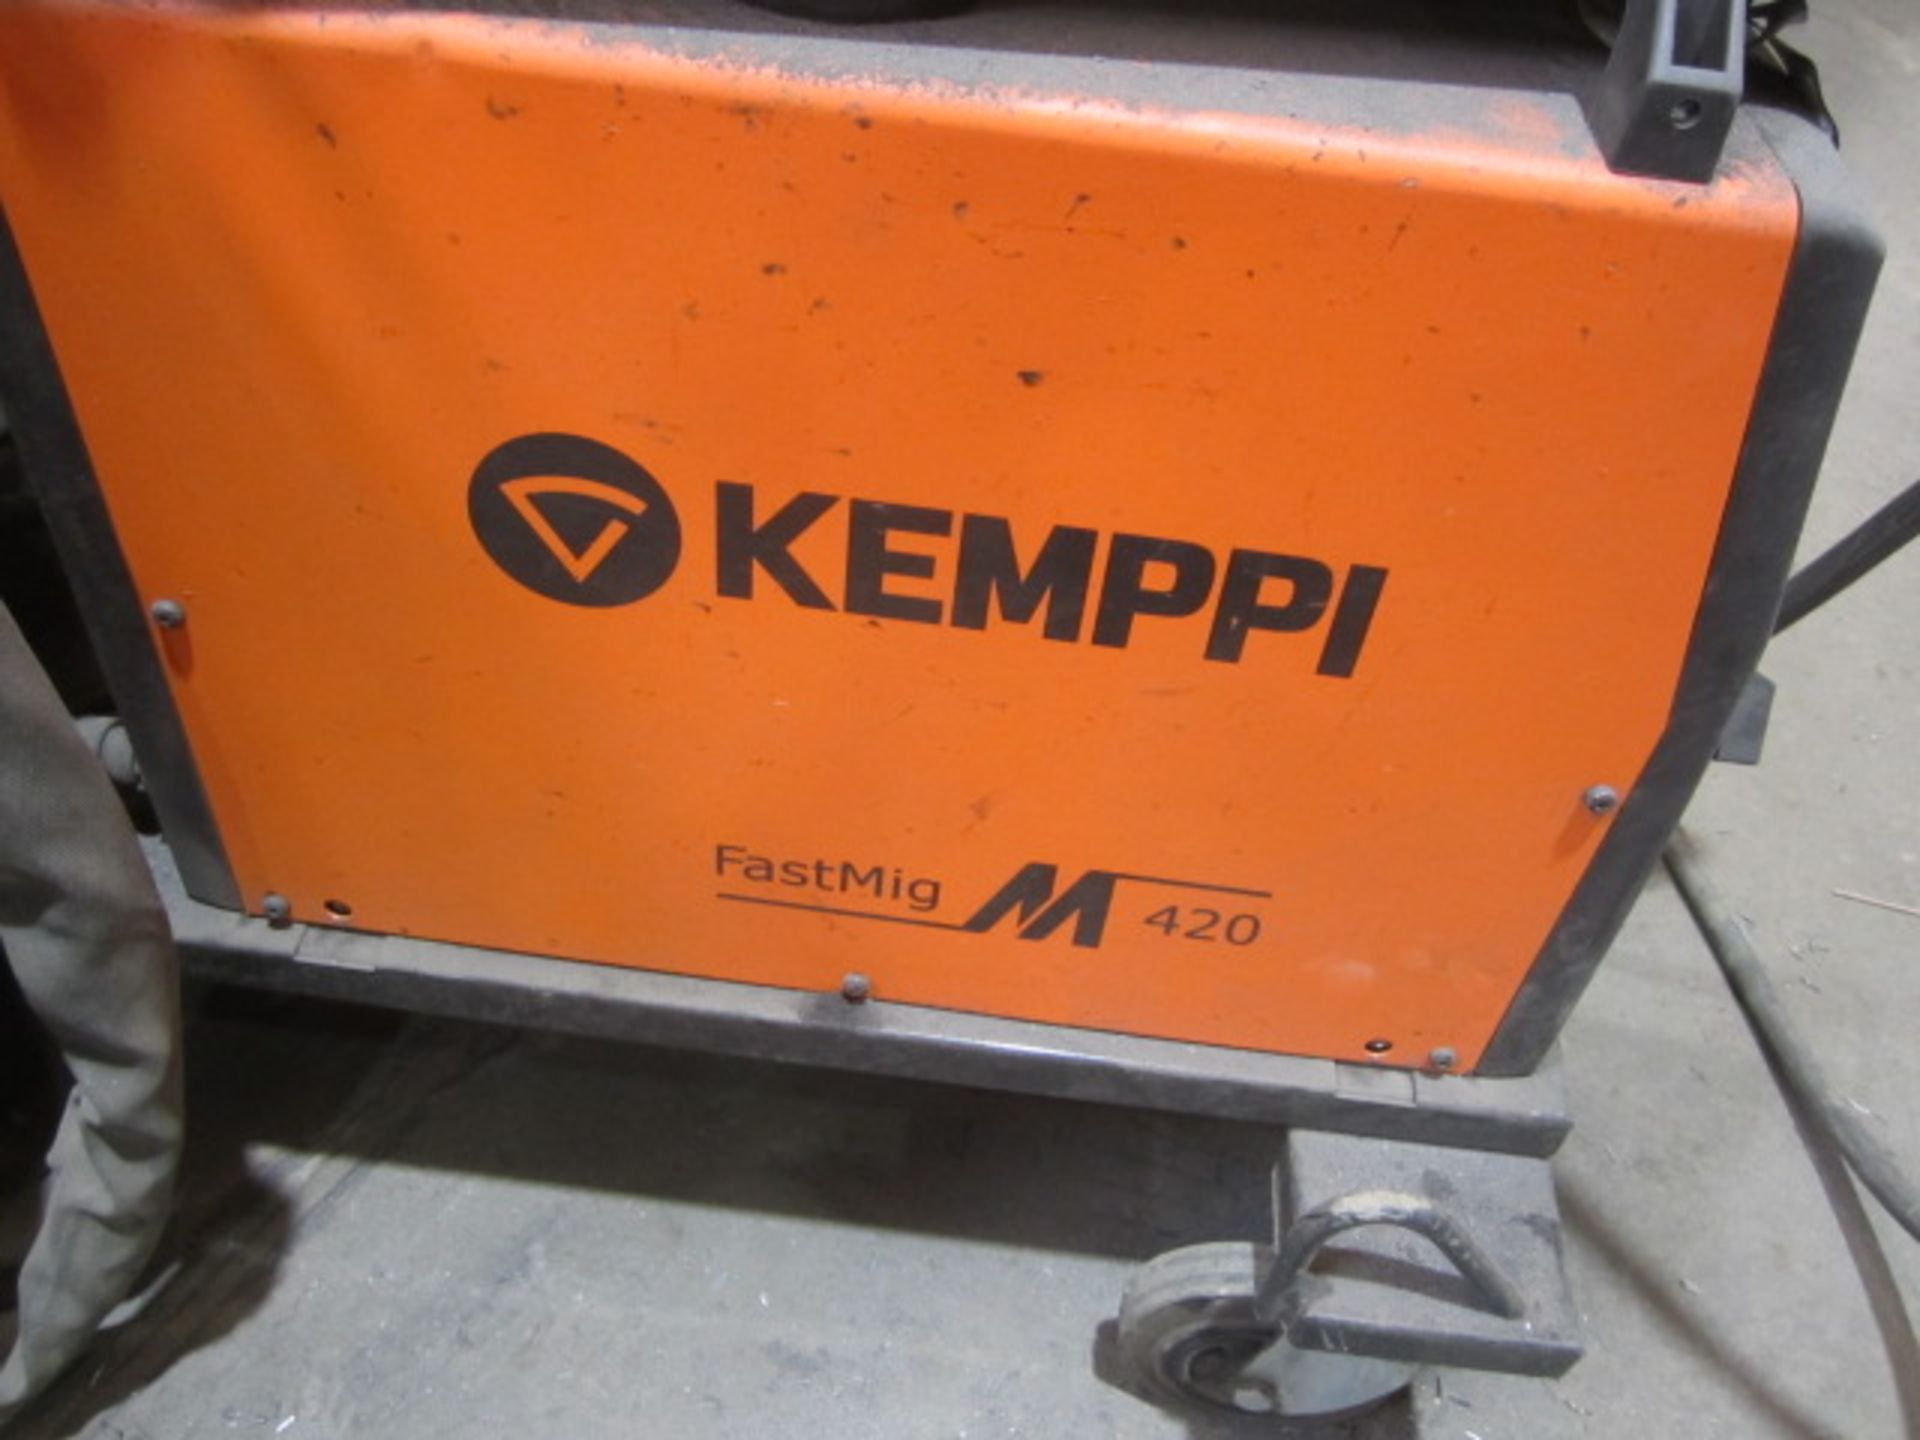 Kemppi Fast Mig M420 mig welder, serial no. 2674258, with Fast Mig MXF65 wire feeder, serial no. - Image 6 of 8